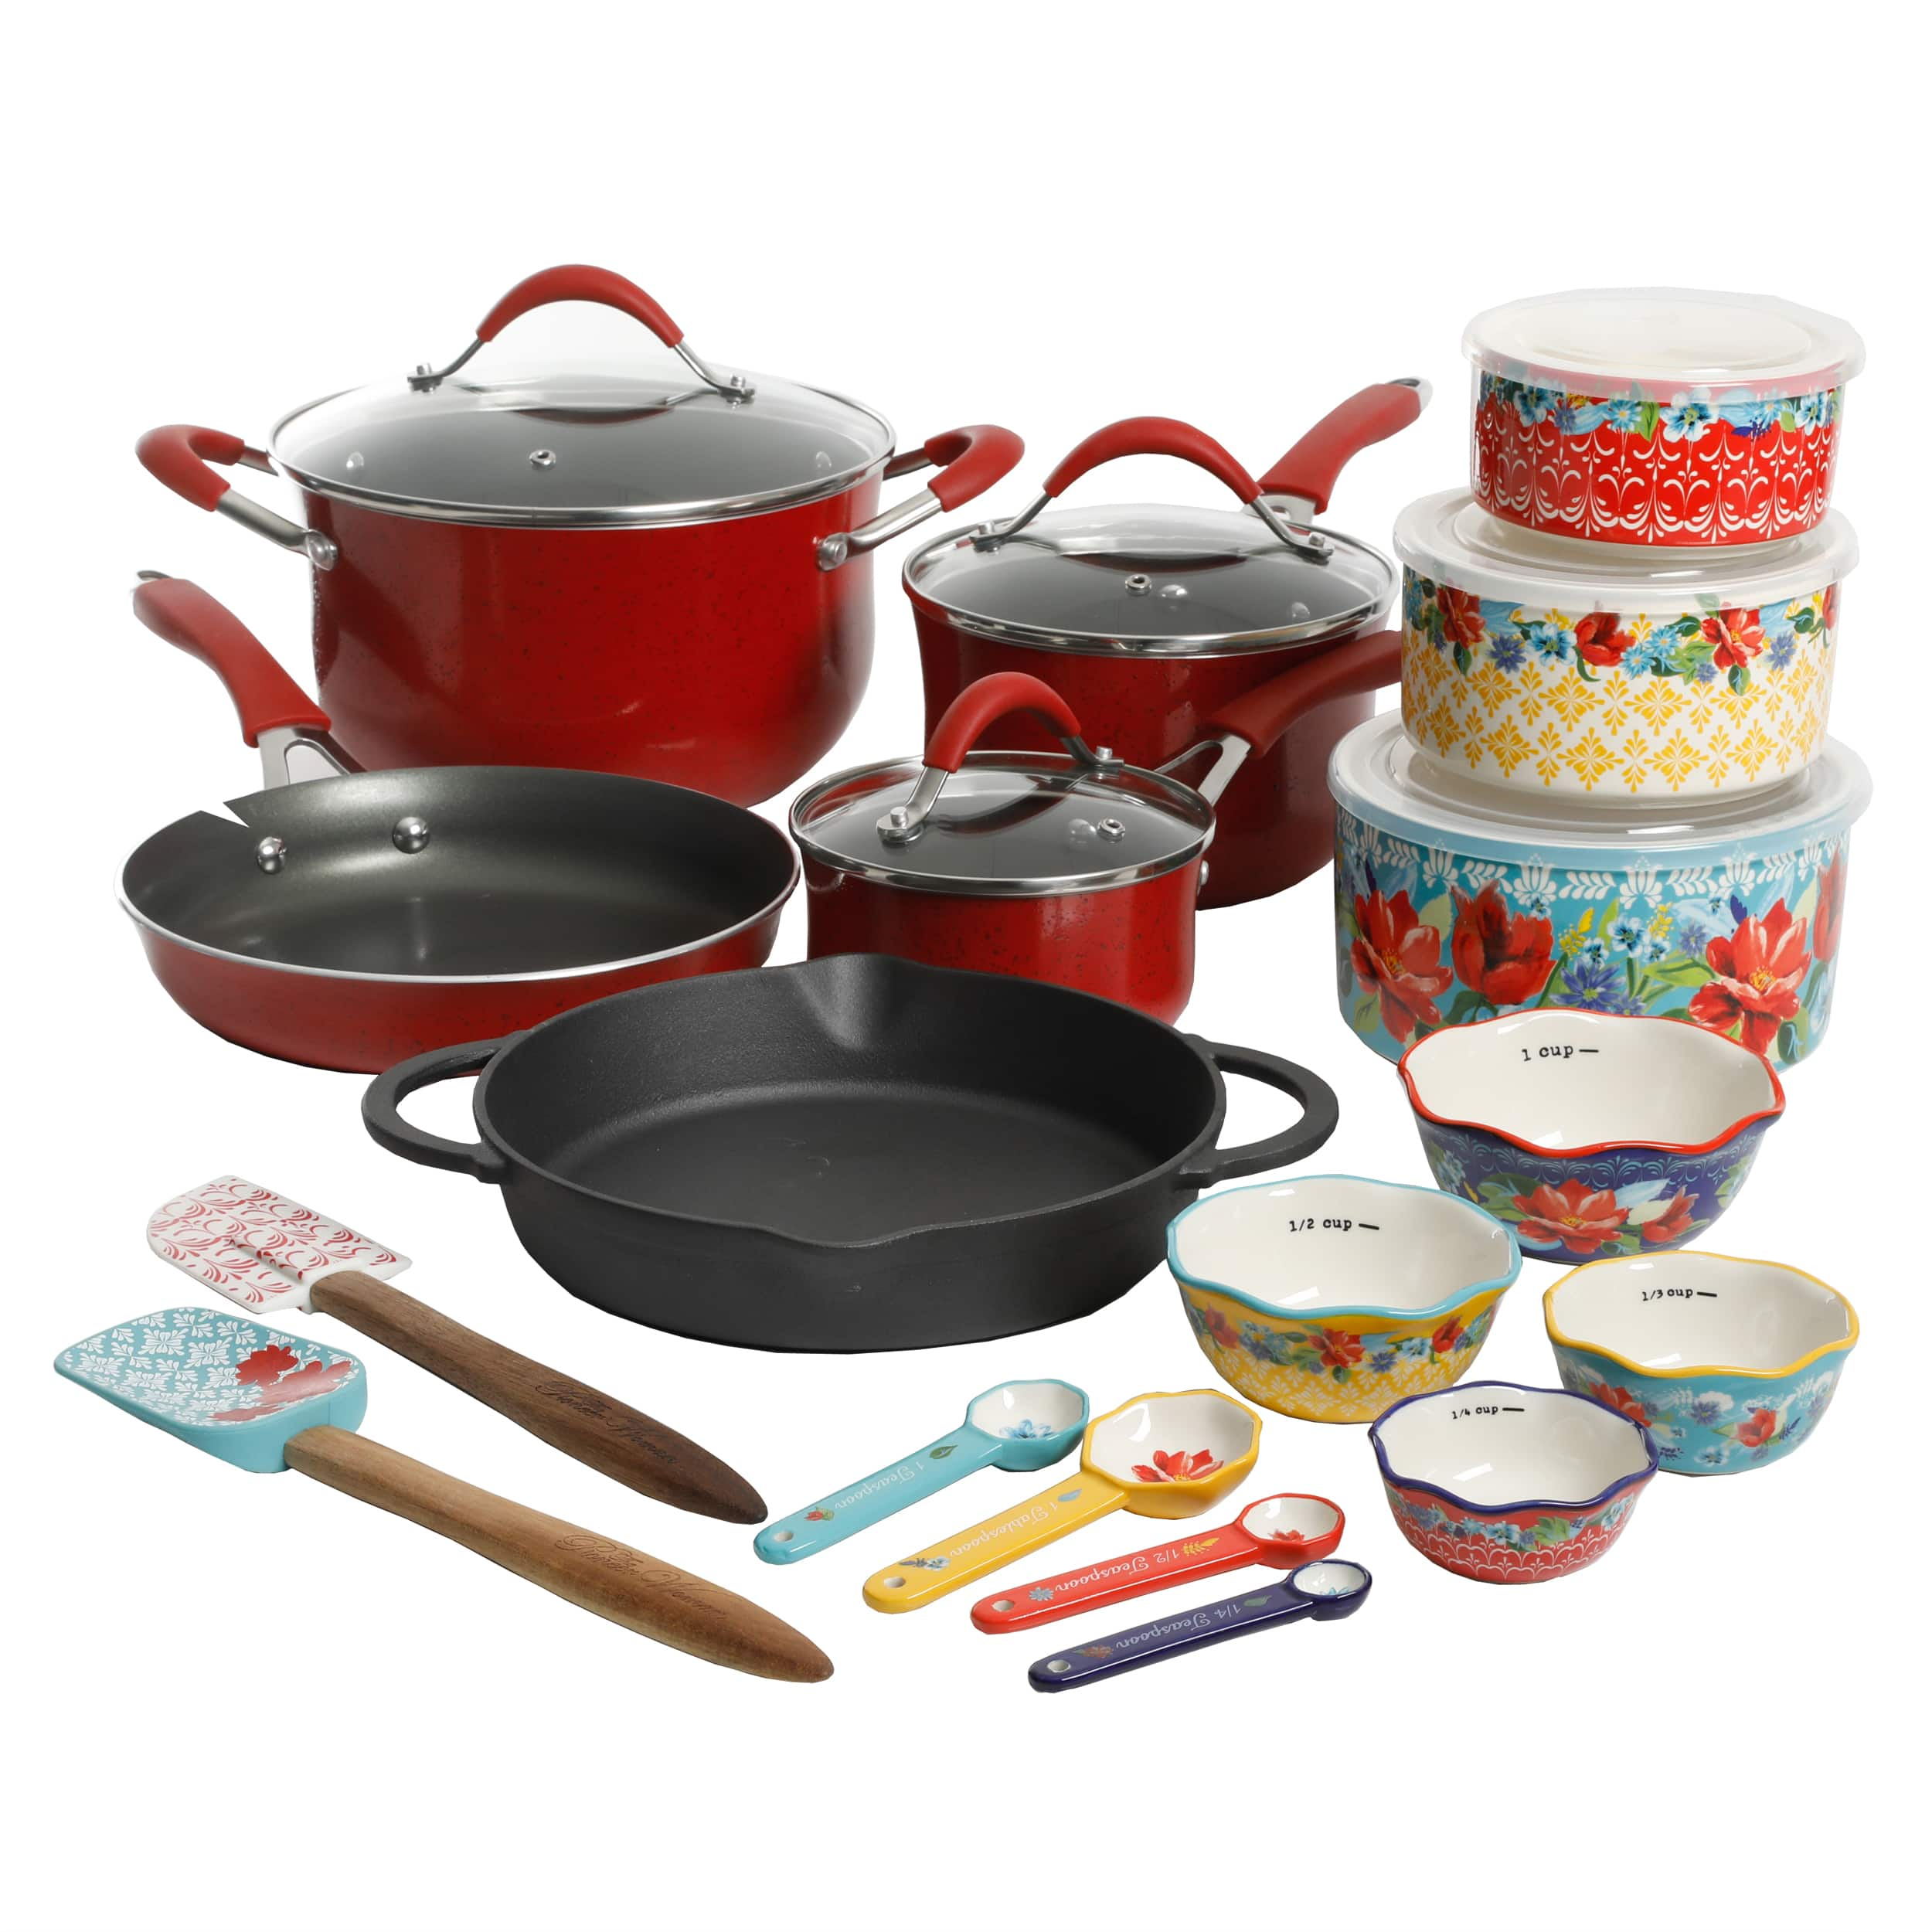 24-Piece The Pioneer Woman Frontier Speckle Cookware & Food Storage Combo Set - $59.00 - Walmart - Free Ship